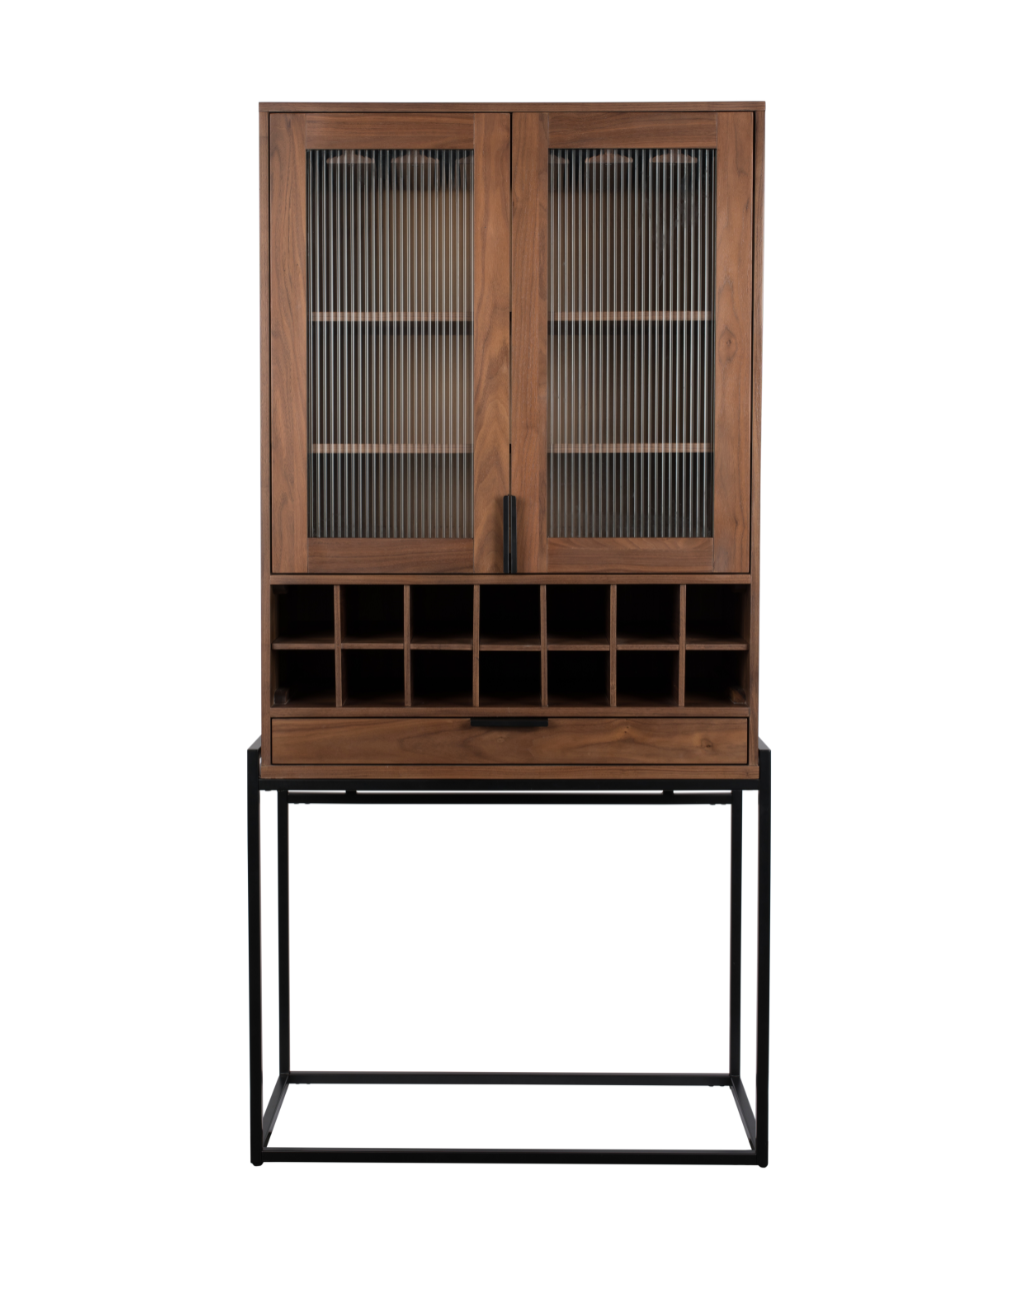 Travis Drinks/ Glasses Cabinet